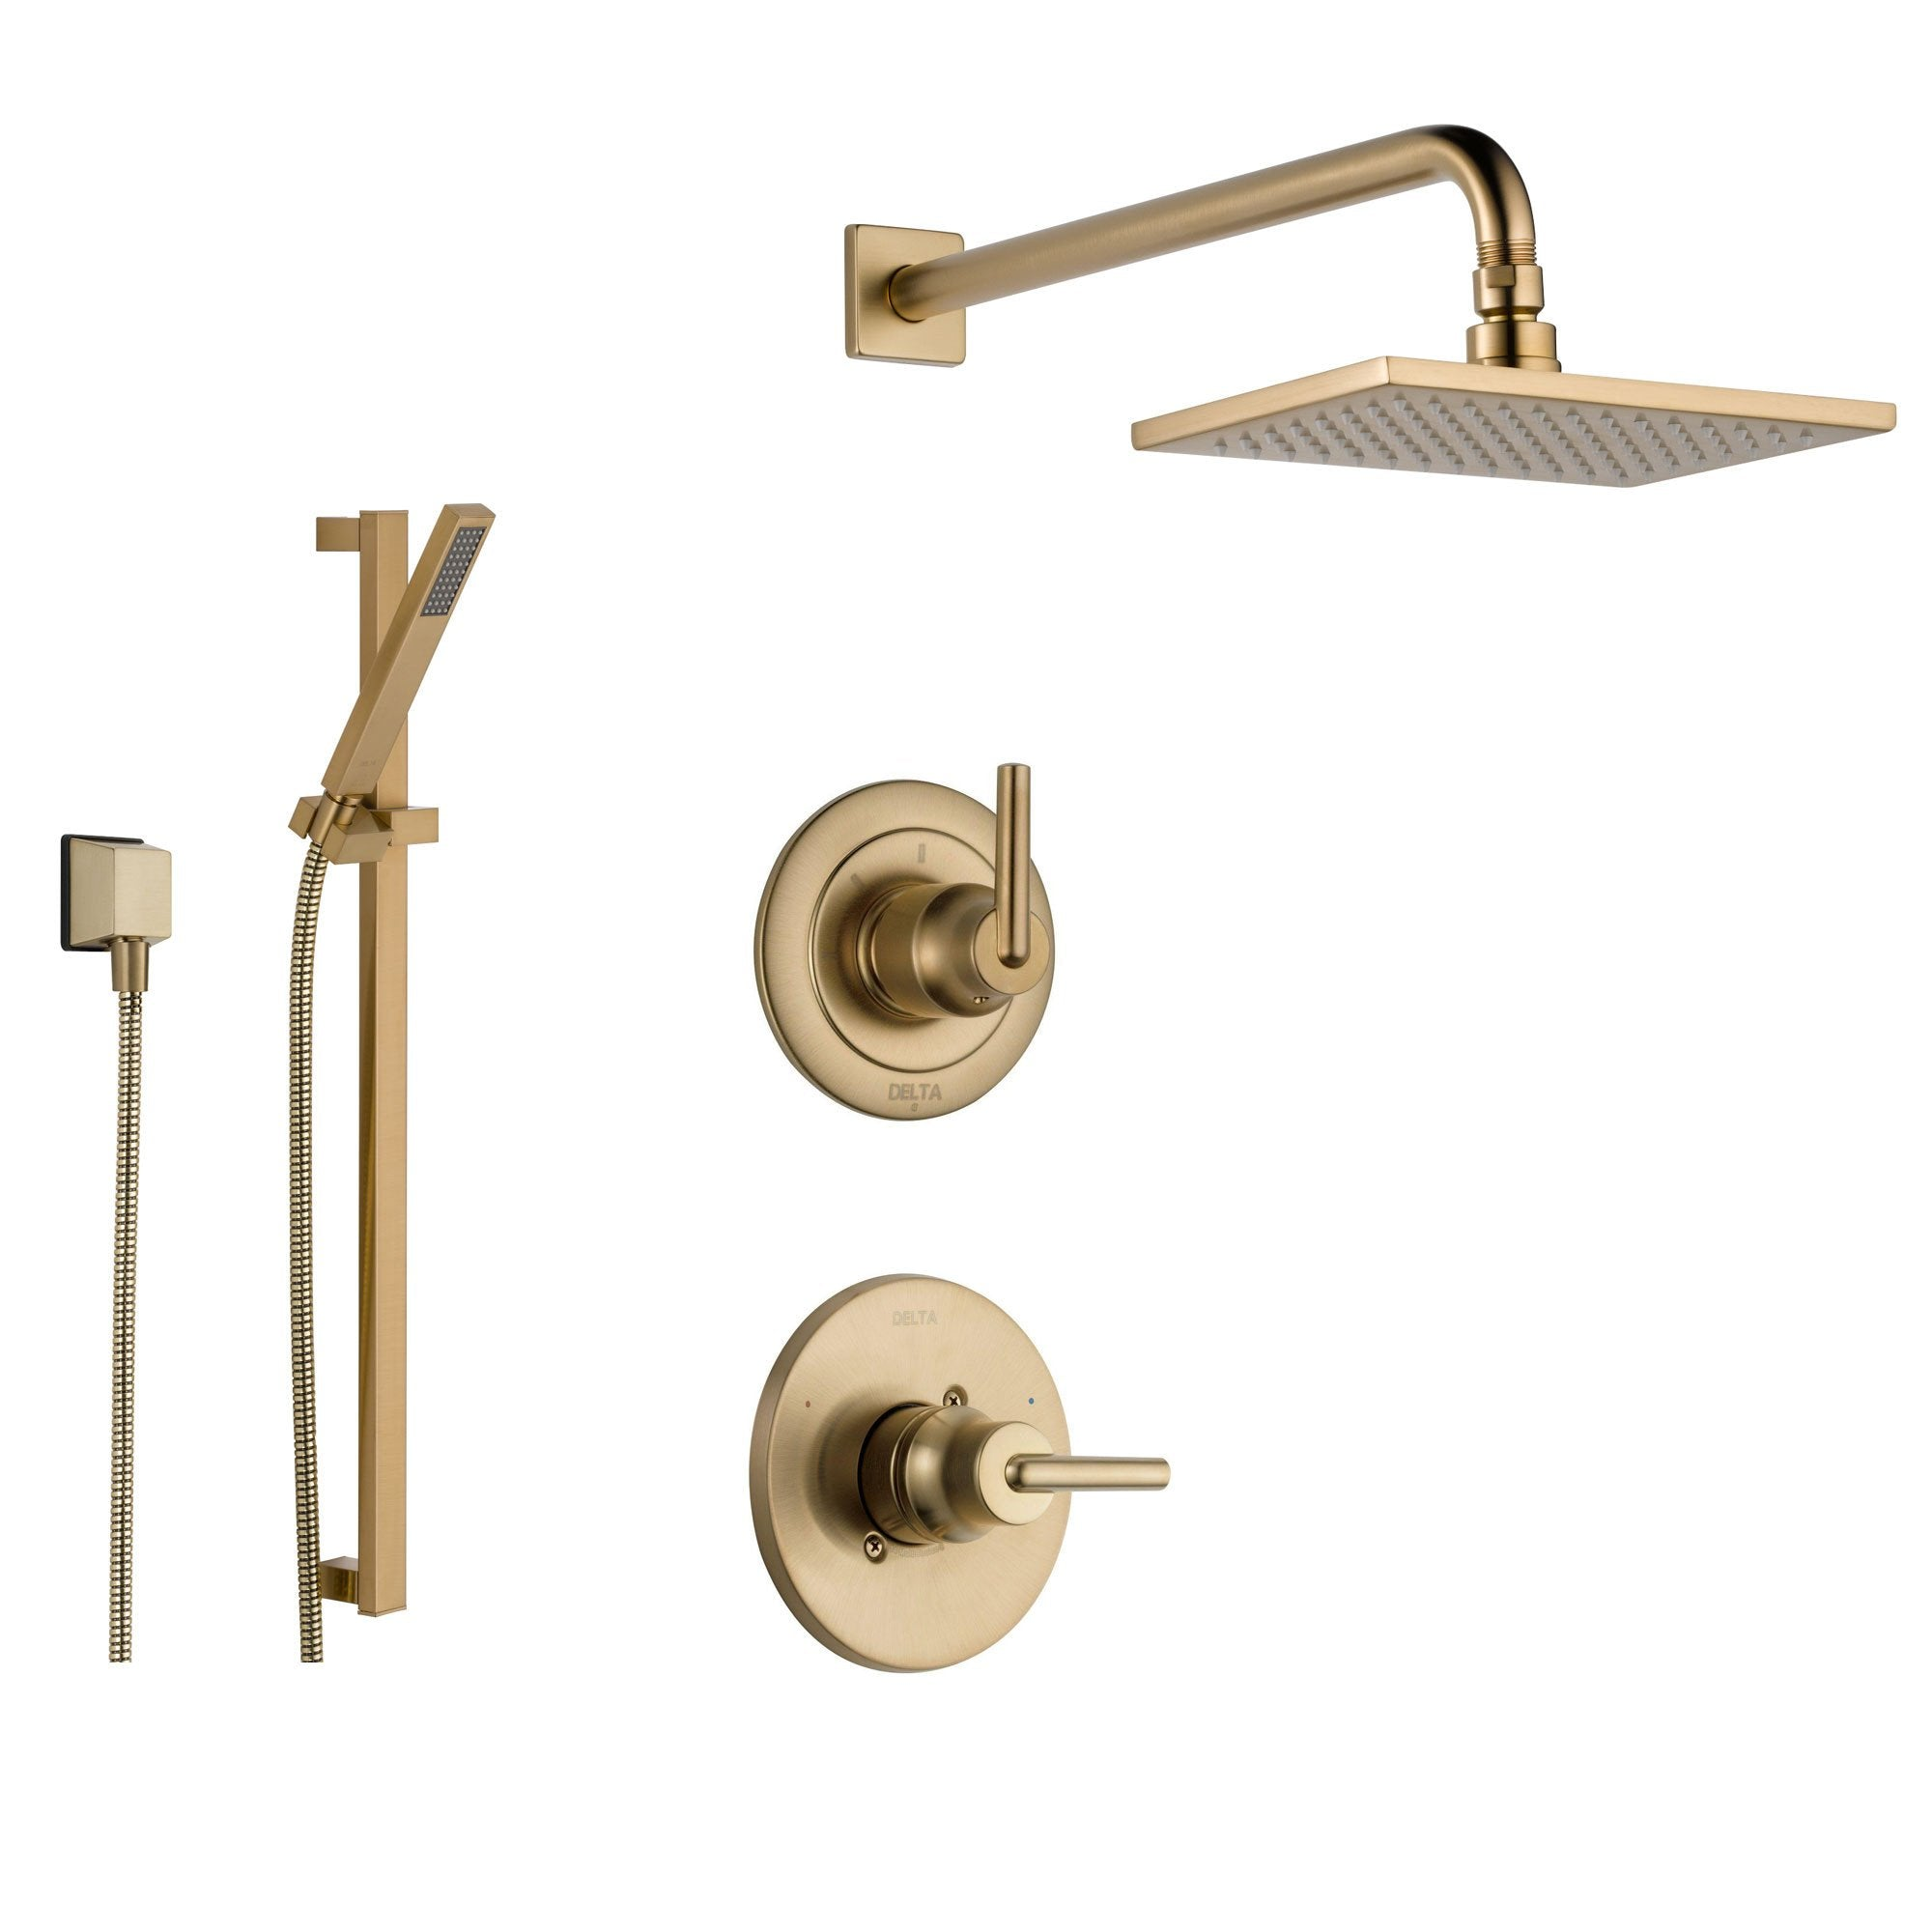 Delta Trinsic Champagne Bronze Shower System With Normal Shower Handle 3 Setting Diverter Large Square Modern Rain Showerhead And Handheld Shower